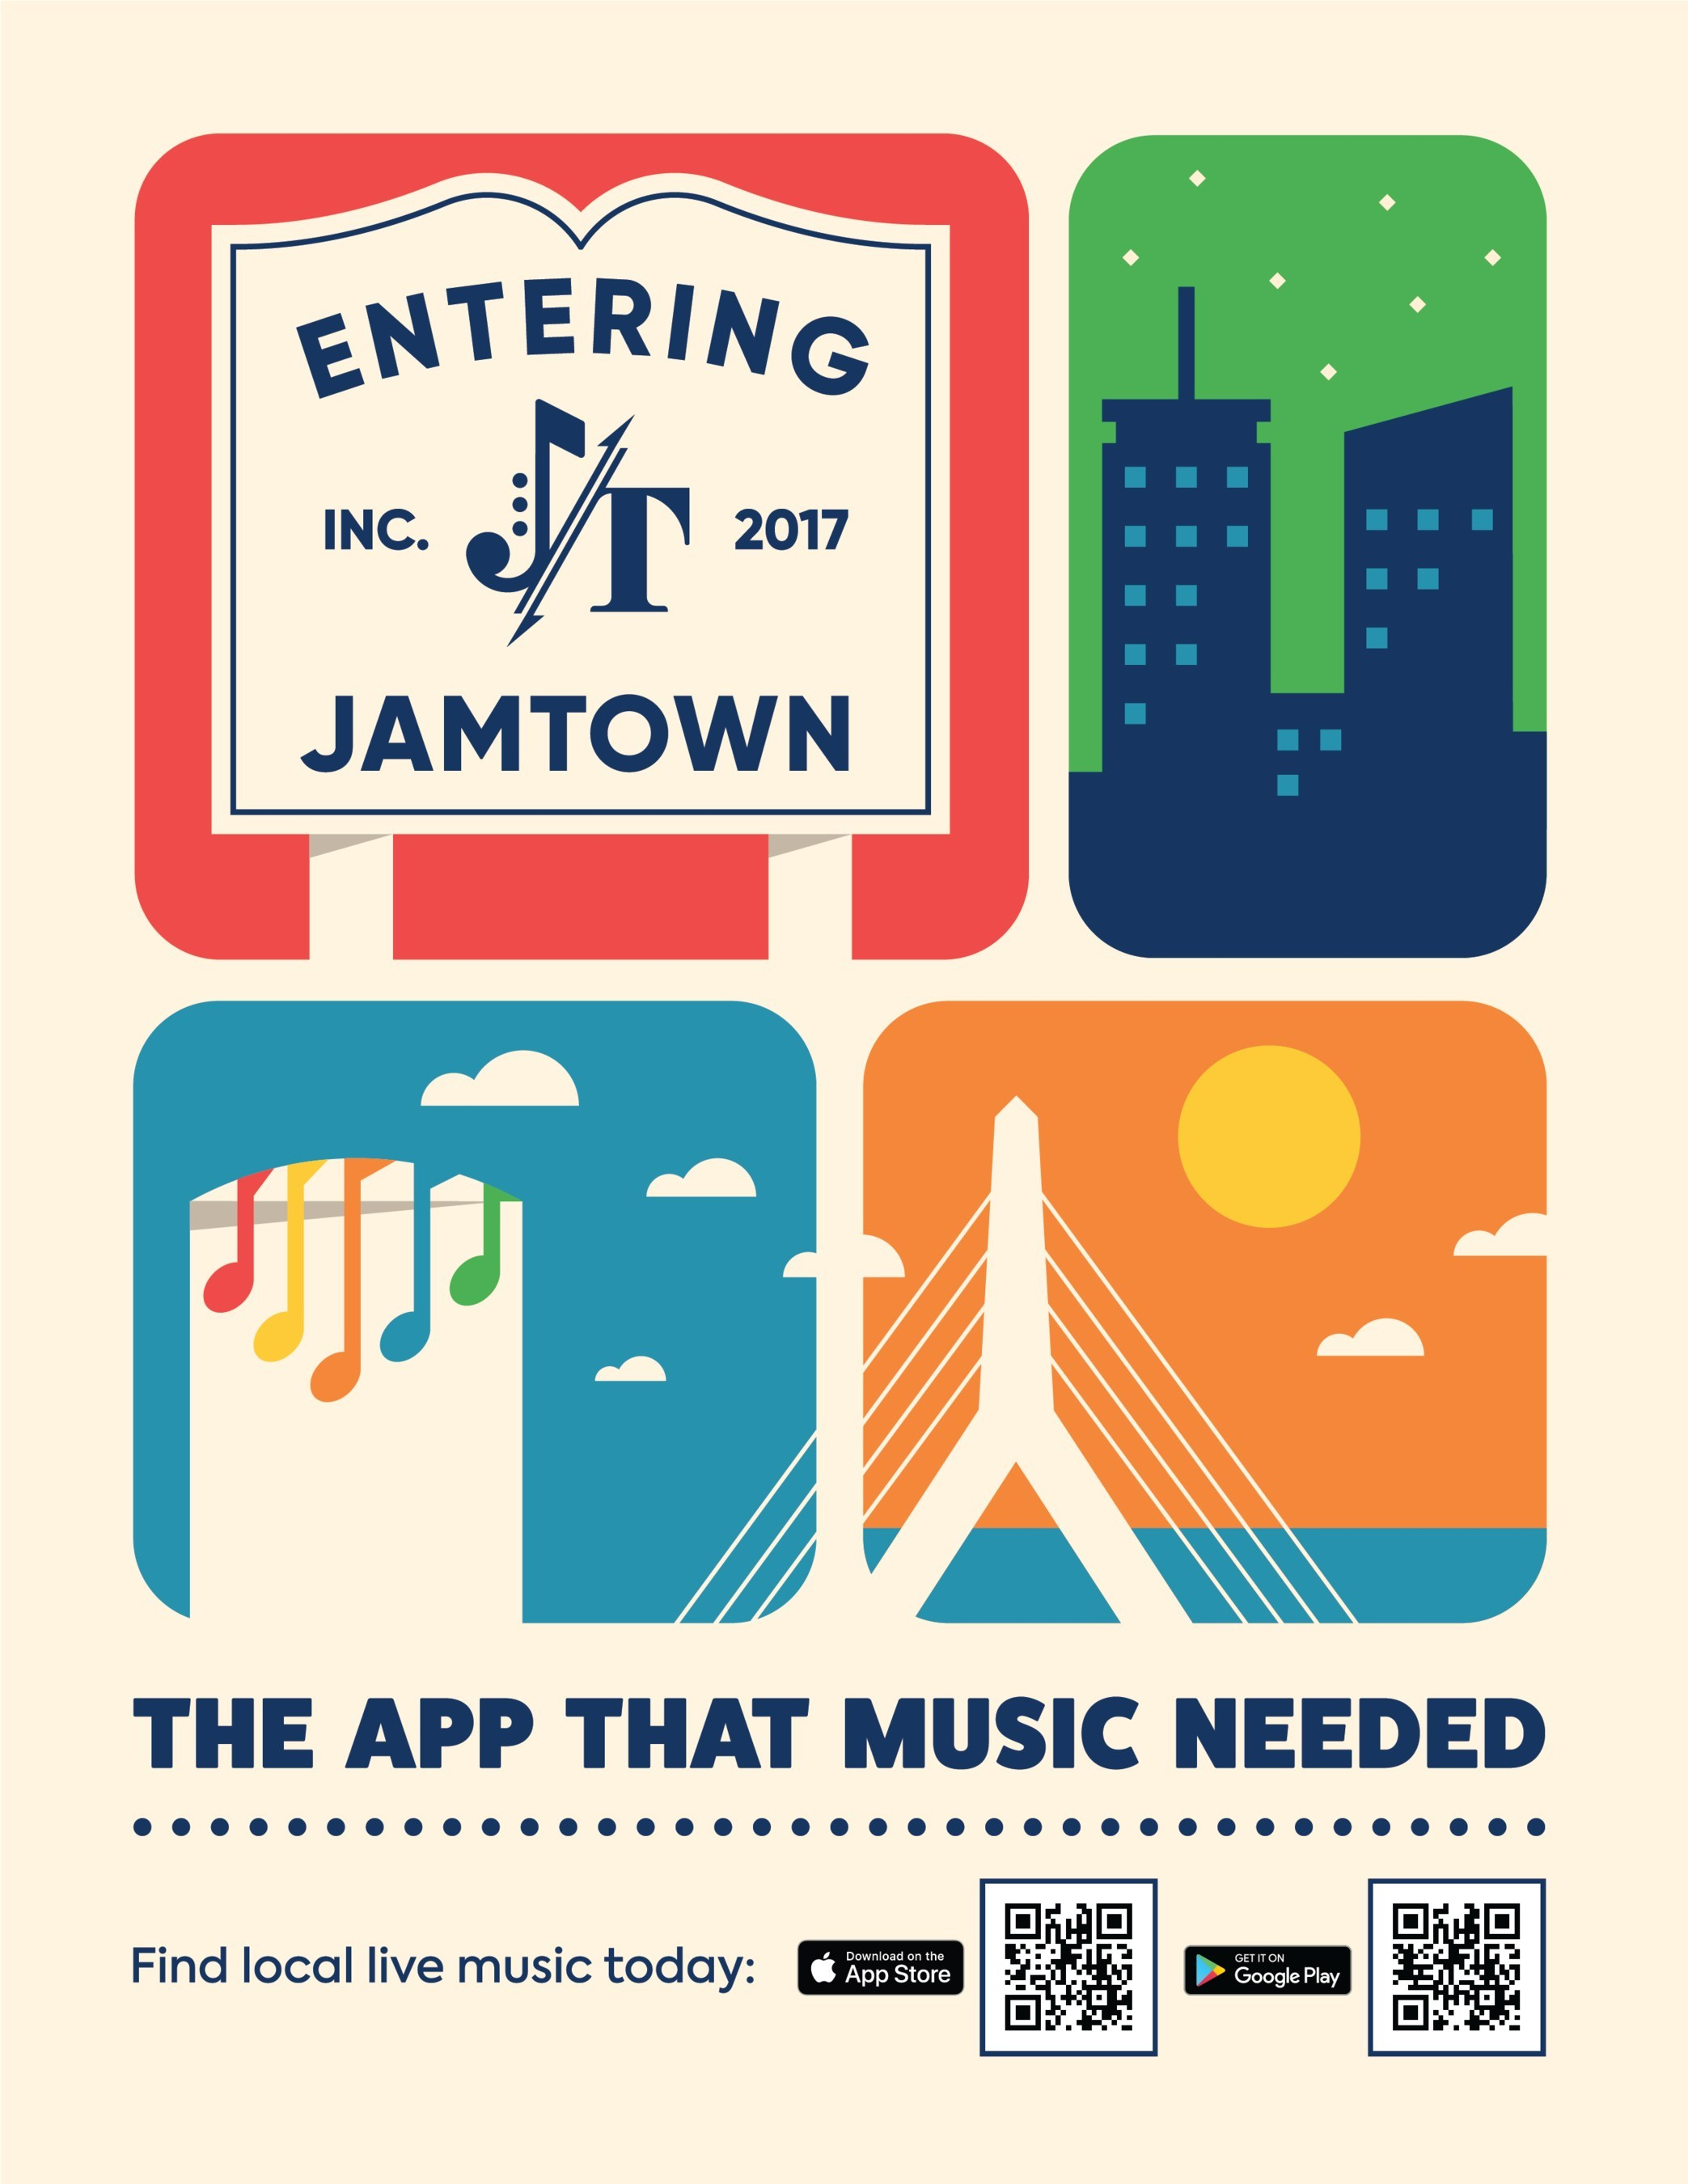 JamTown Music Co. app